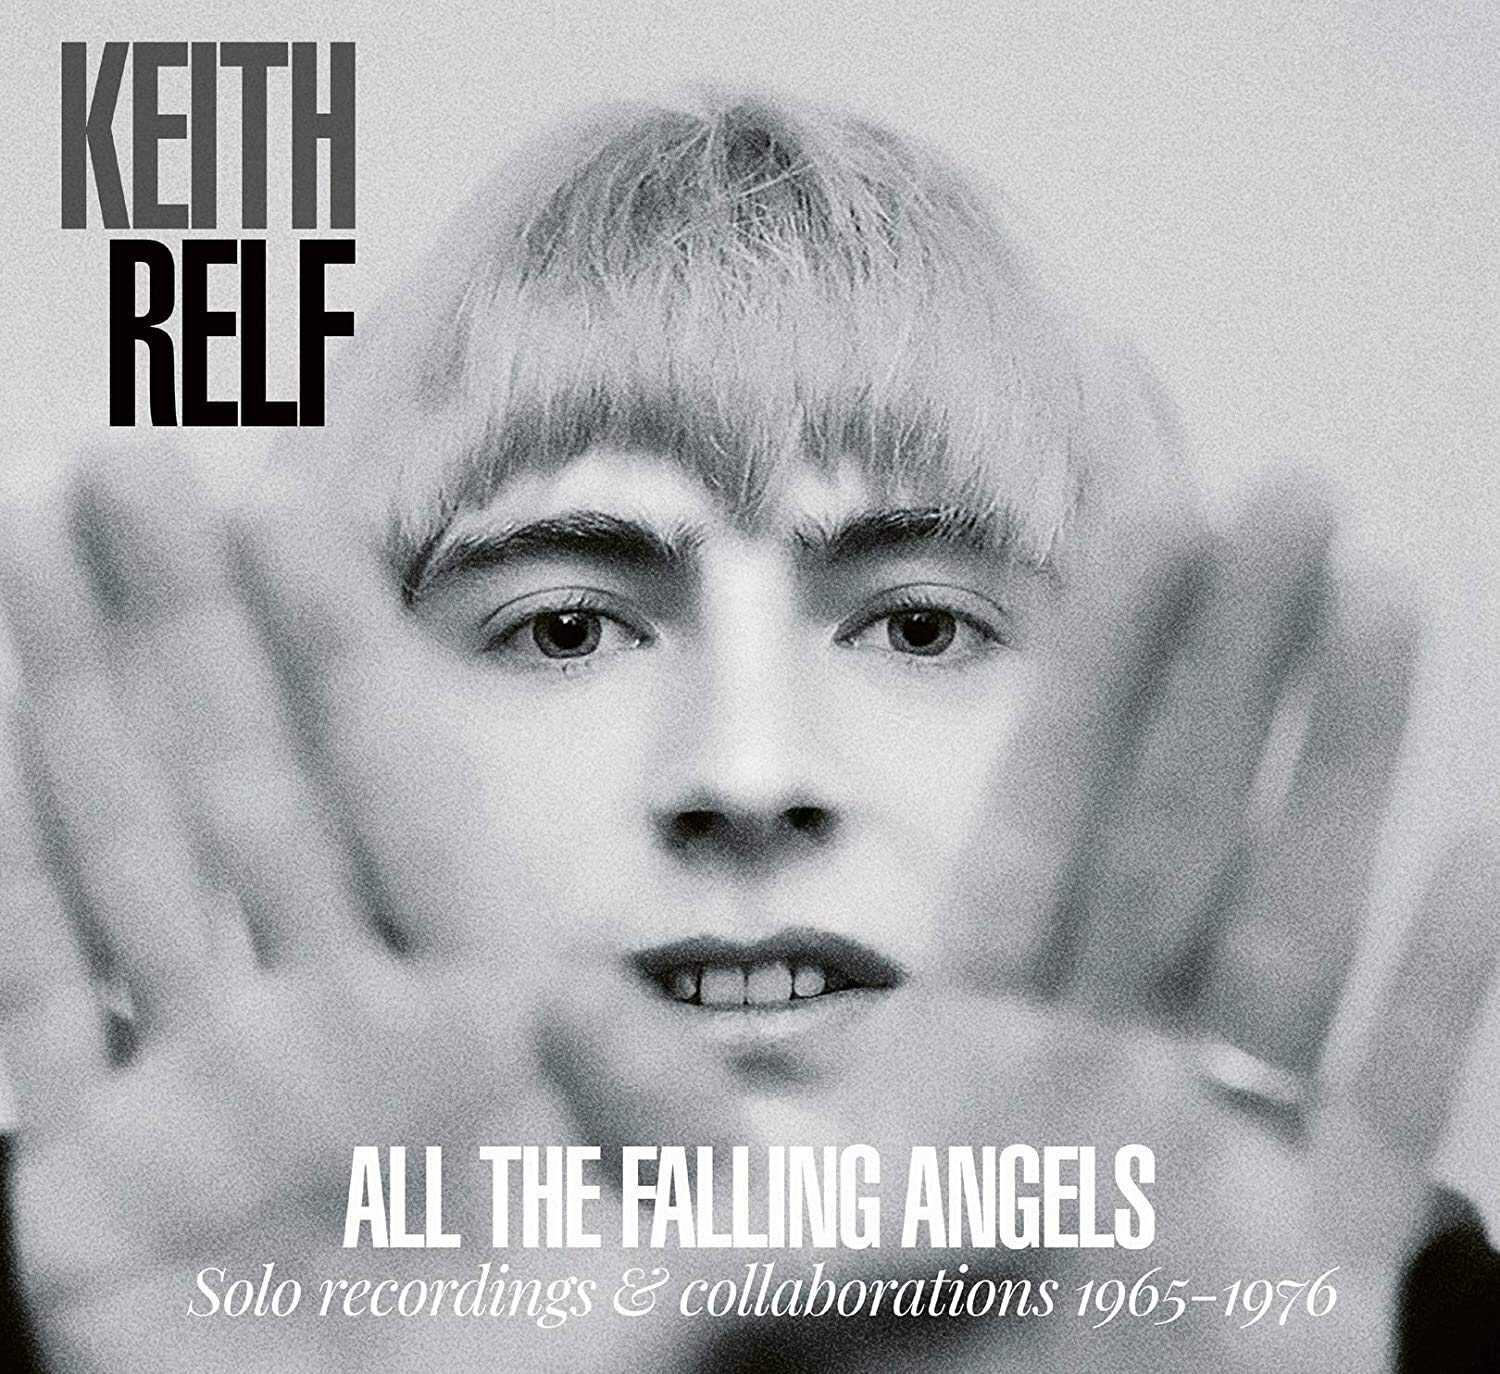 Keith Relf — All the Falling Angels